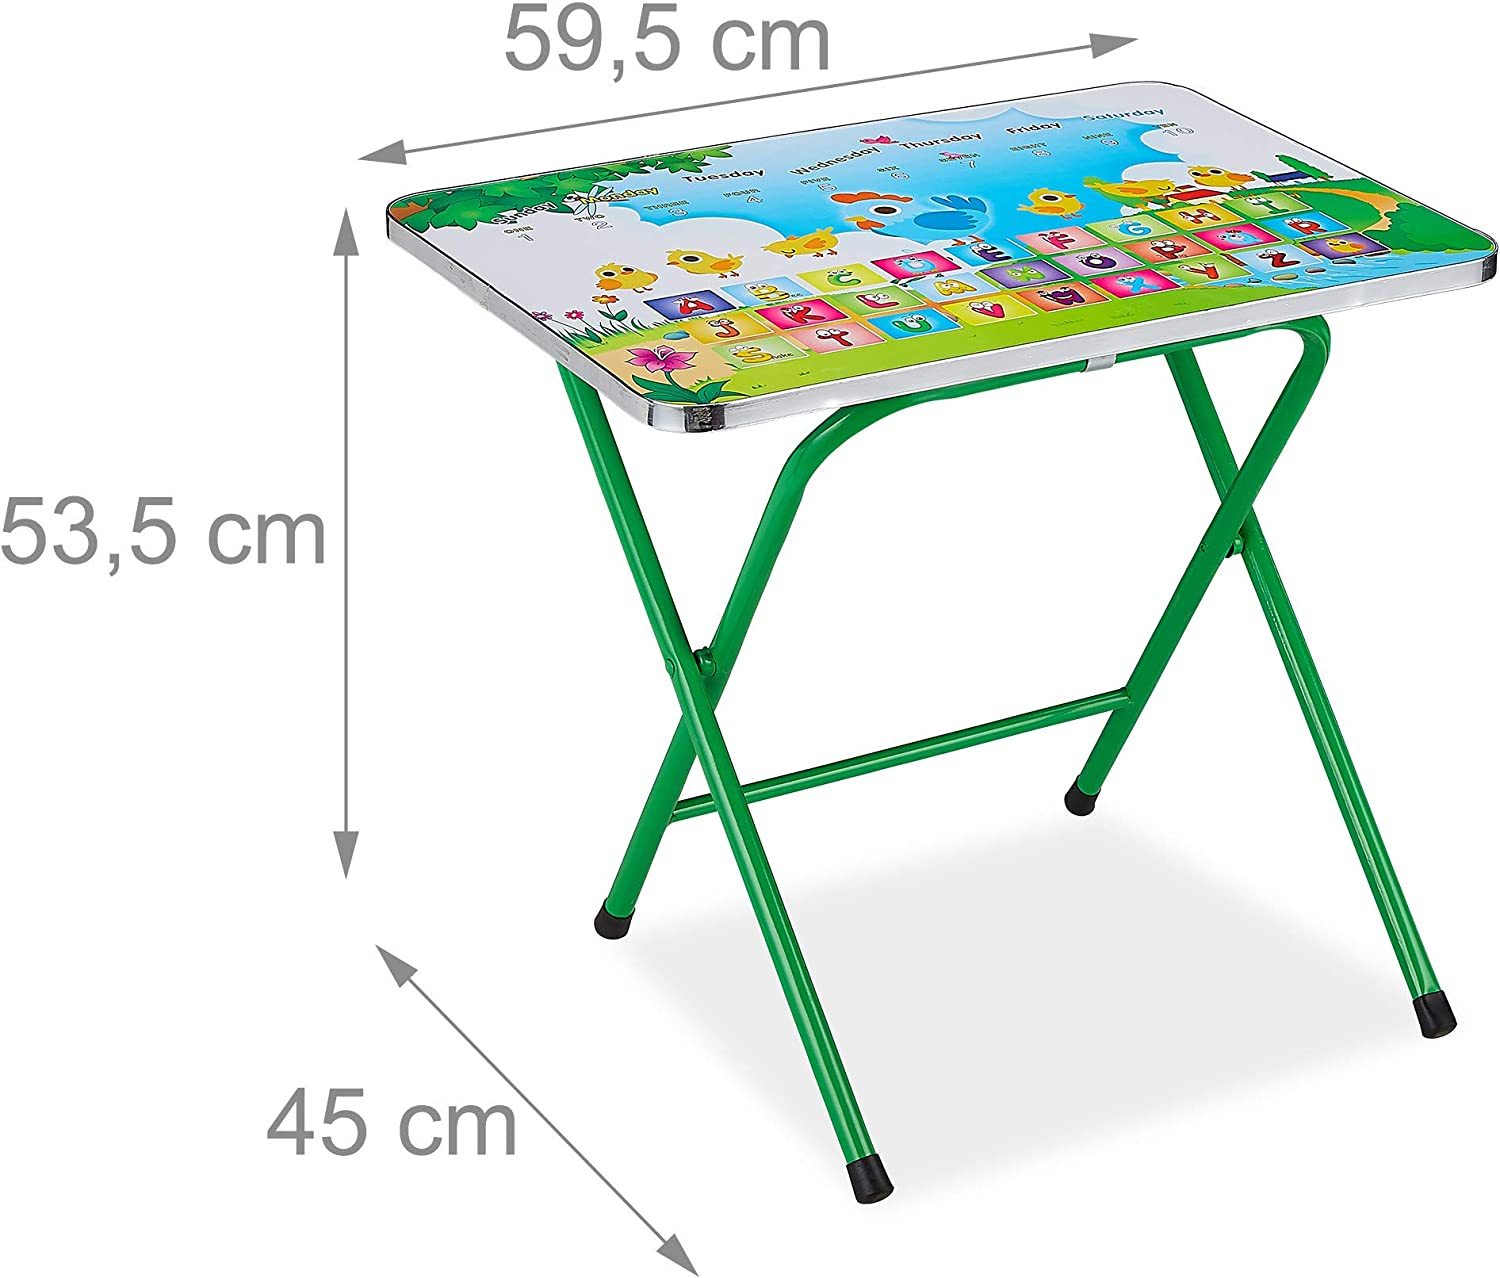 Blue Design Folds Compactly Folding Metal Children/'s Furniture Cartoon Relaxdays Kid/'s Foldable Table /& Chair Set